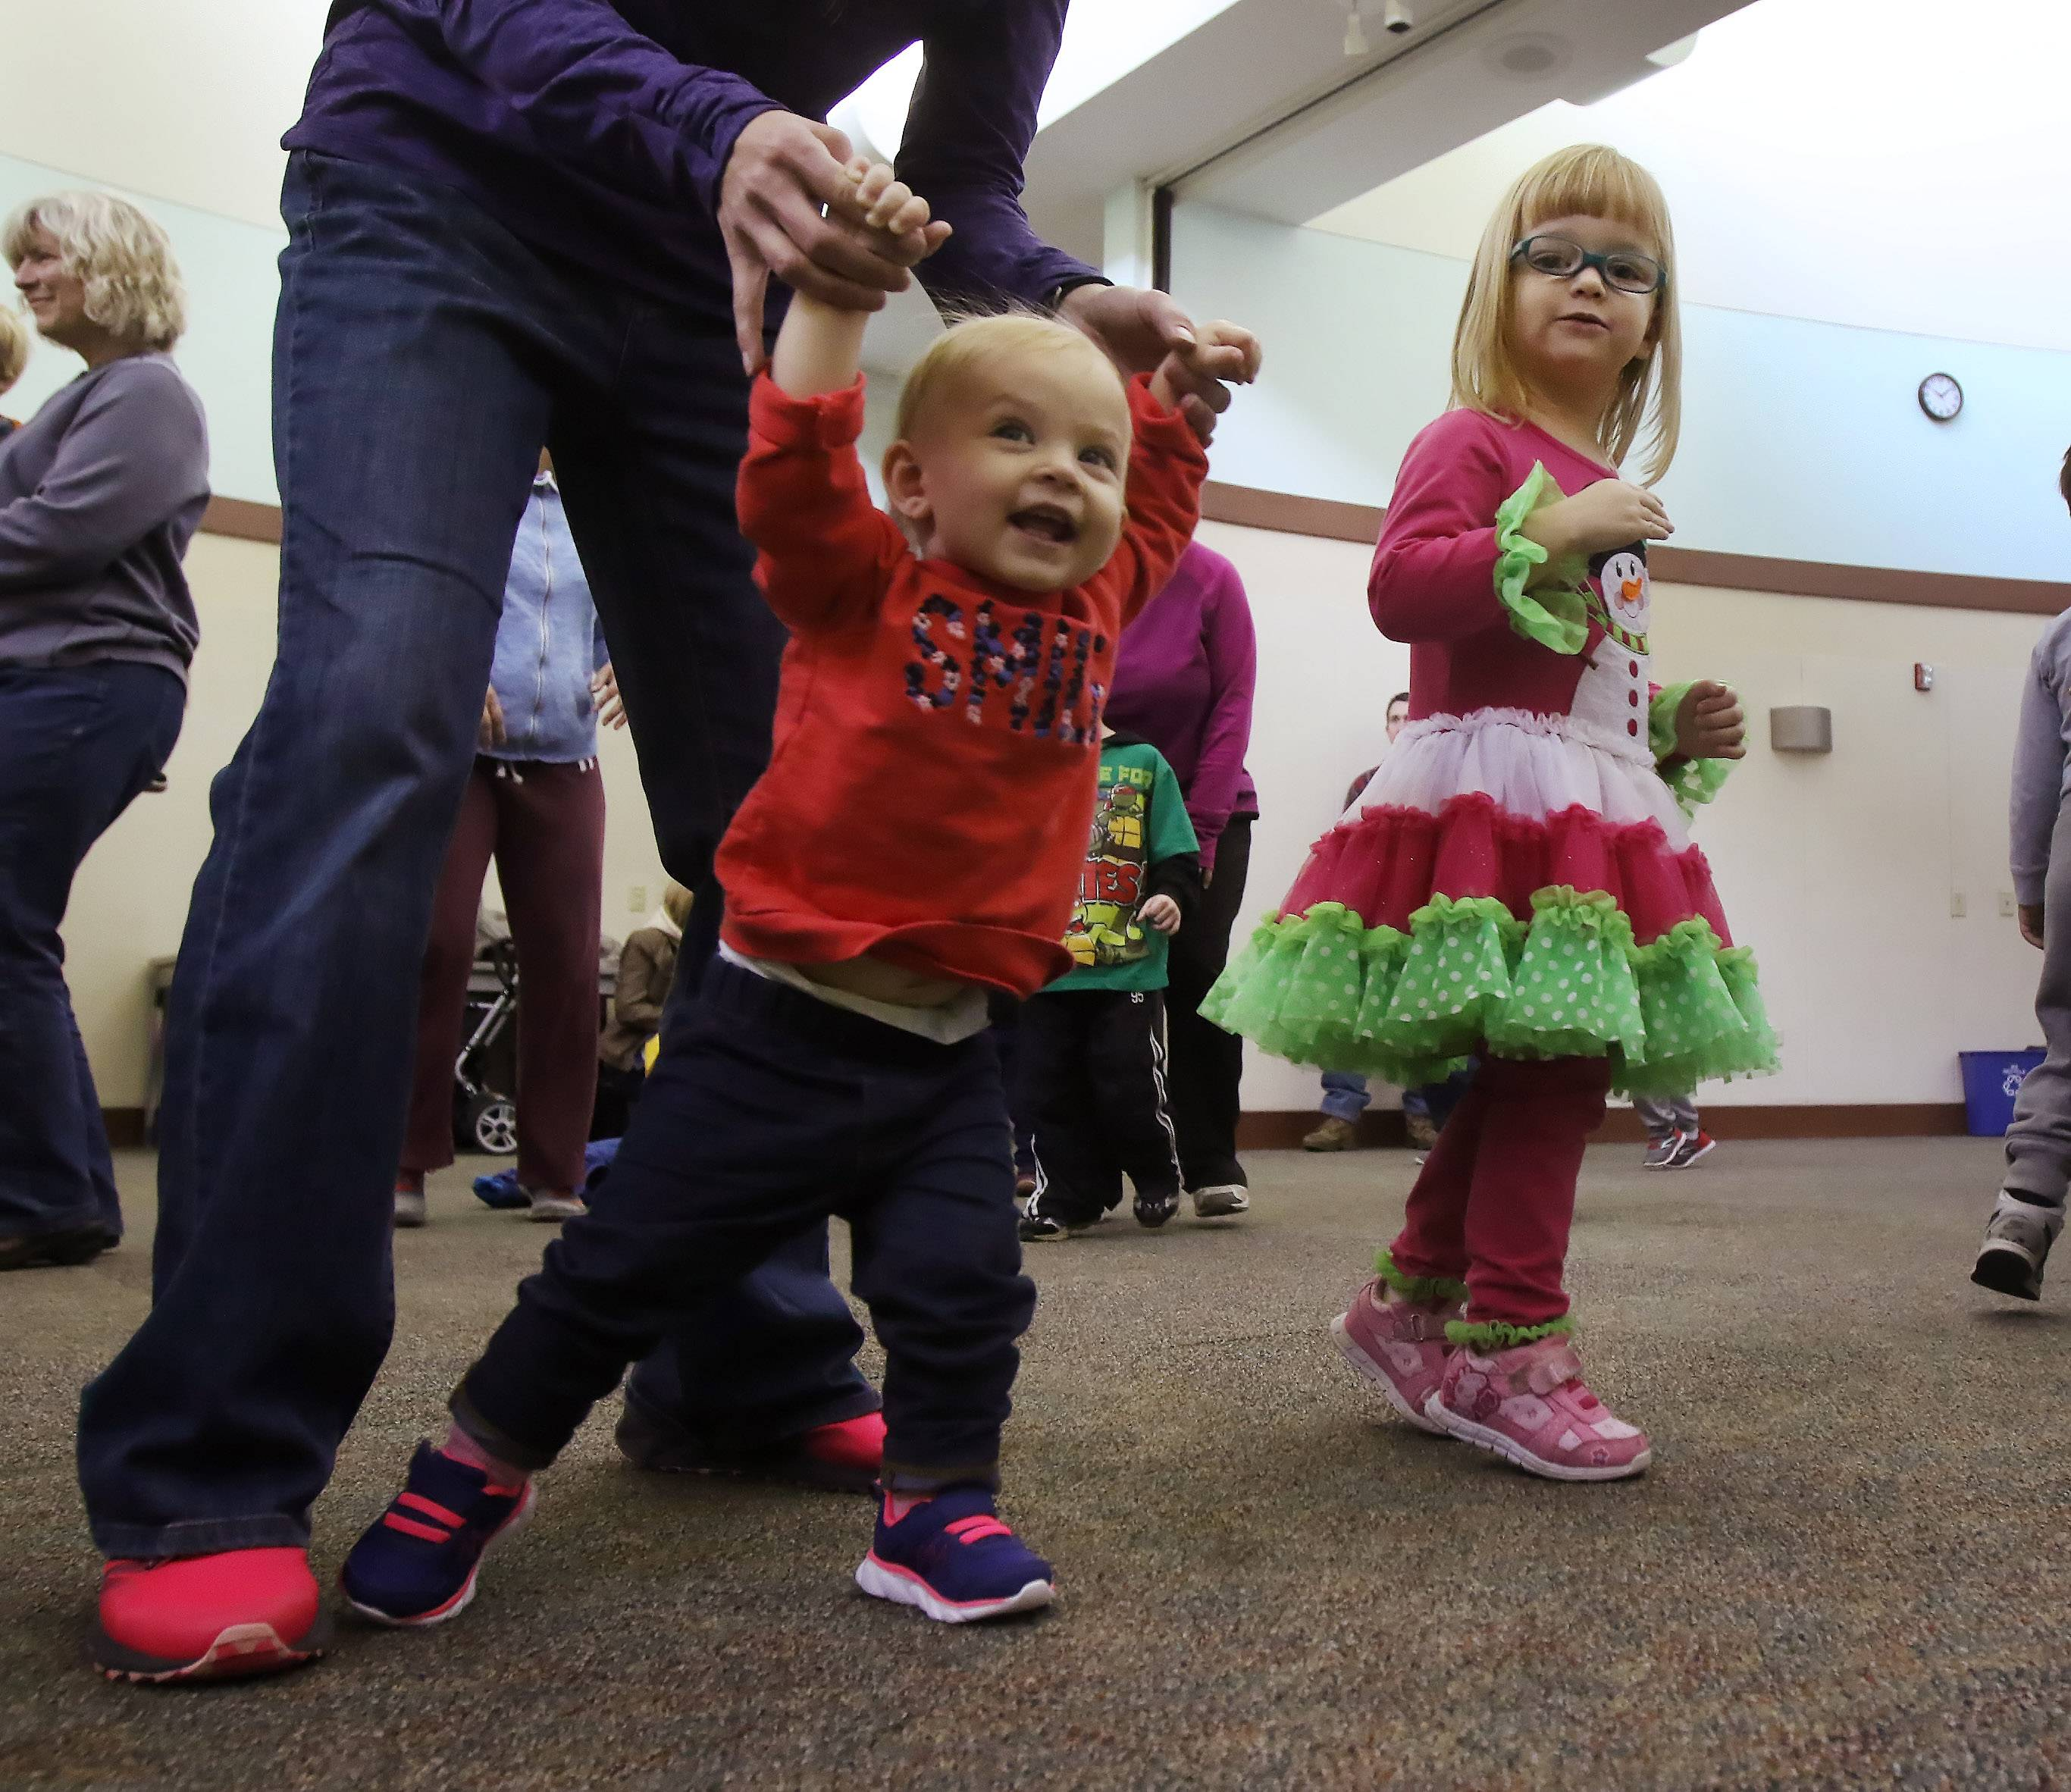 Layla Lock of Gurnee dances with her mother, Crystal, as Emma Teal, 3, of Lindenhurst watches Tuesday during the Family Dance Party at Lake Villa District Library. About 60 children, parents and caregivers danced and played instruments during the musical program.